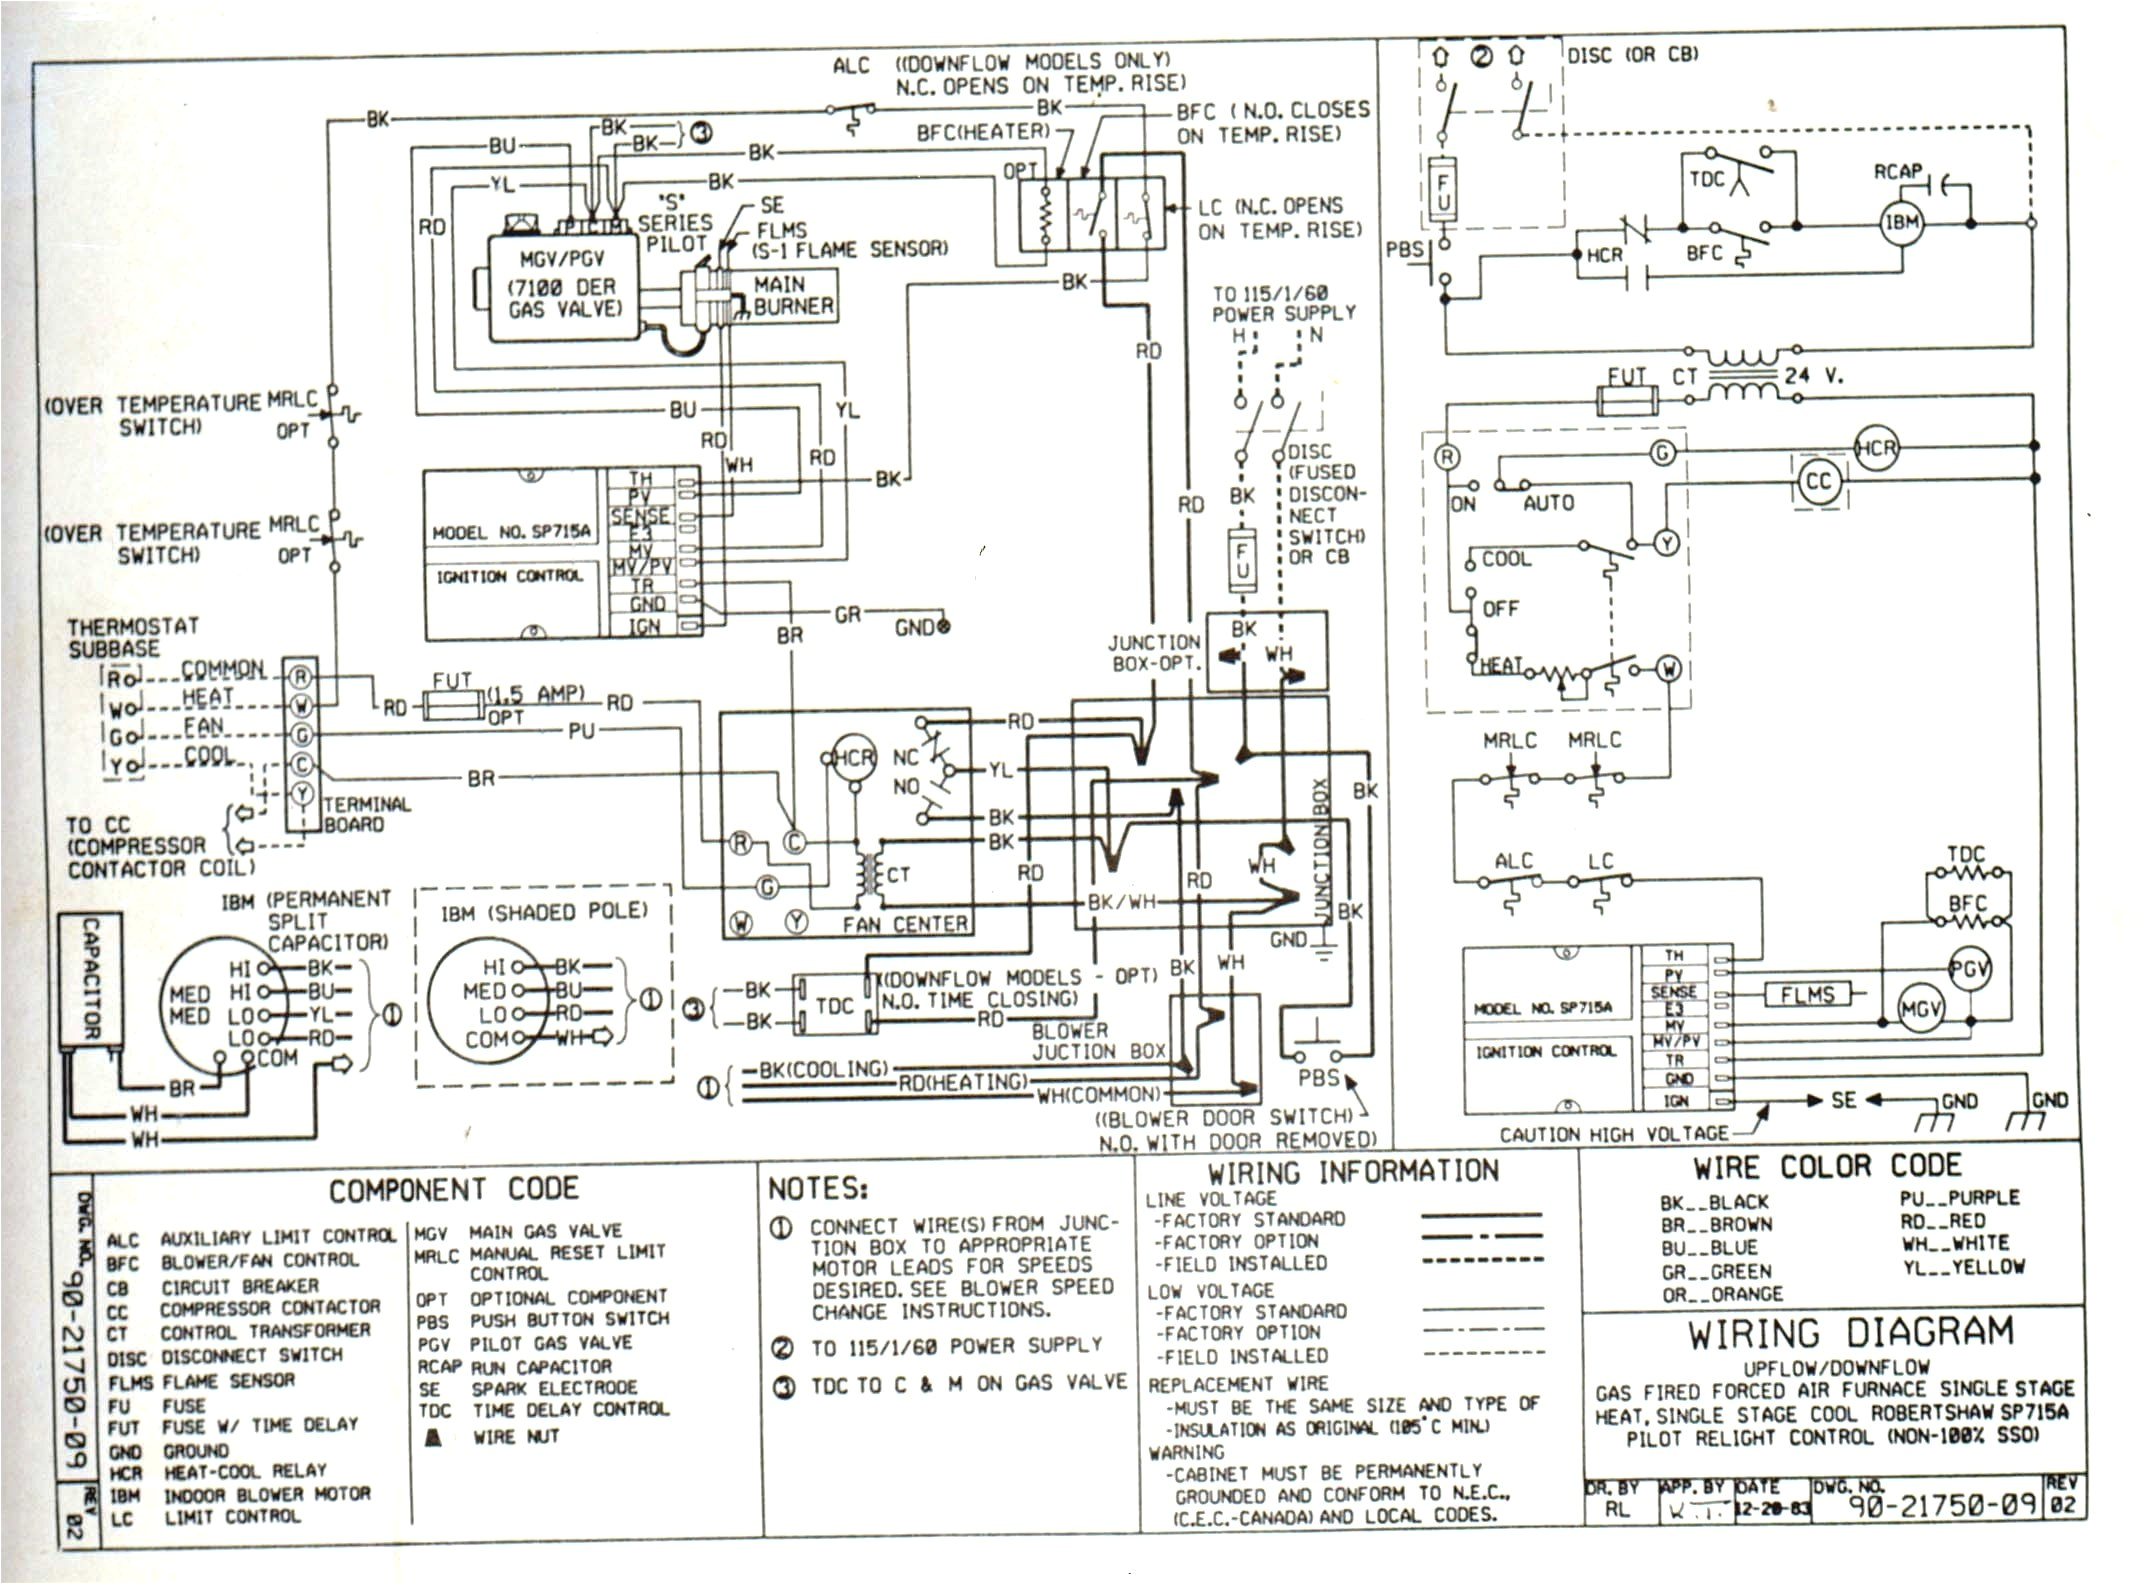 heat strip wiring diagram wiring diagram view goodman heat strip wiring diagram goettl ac heat strip